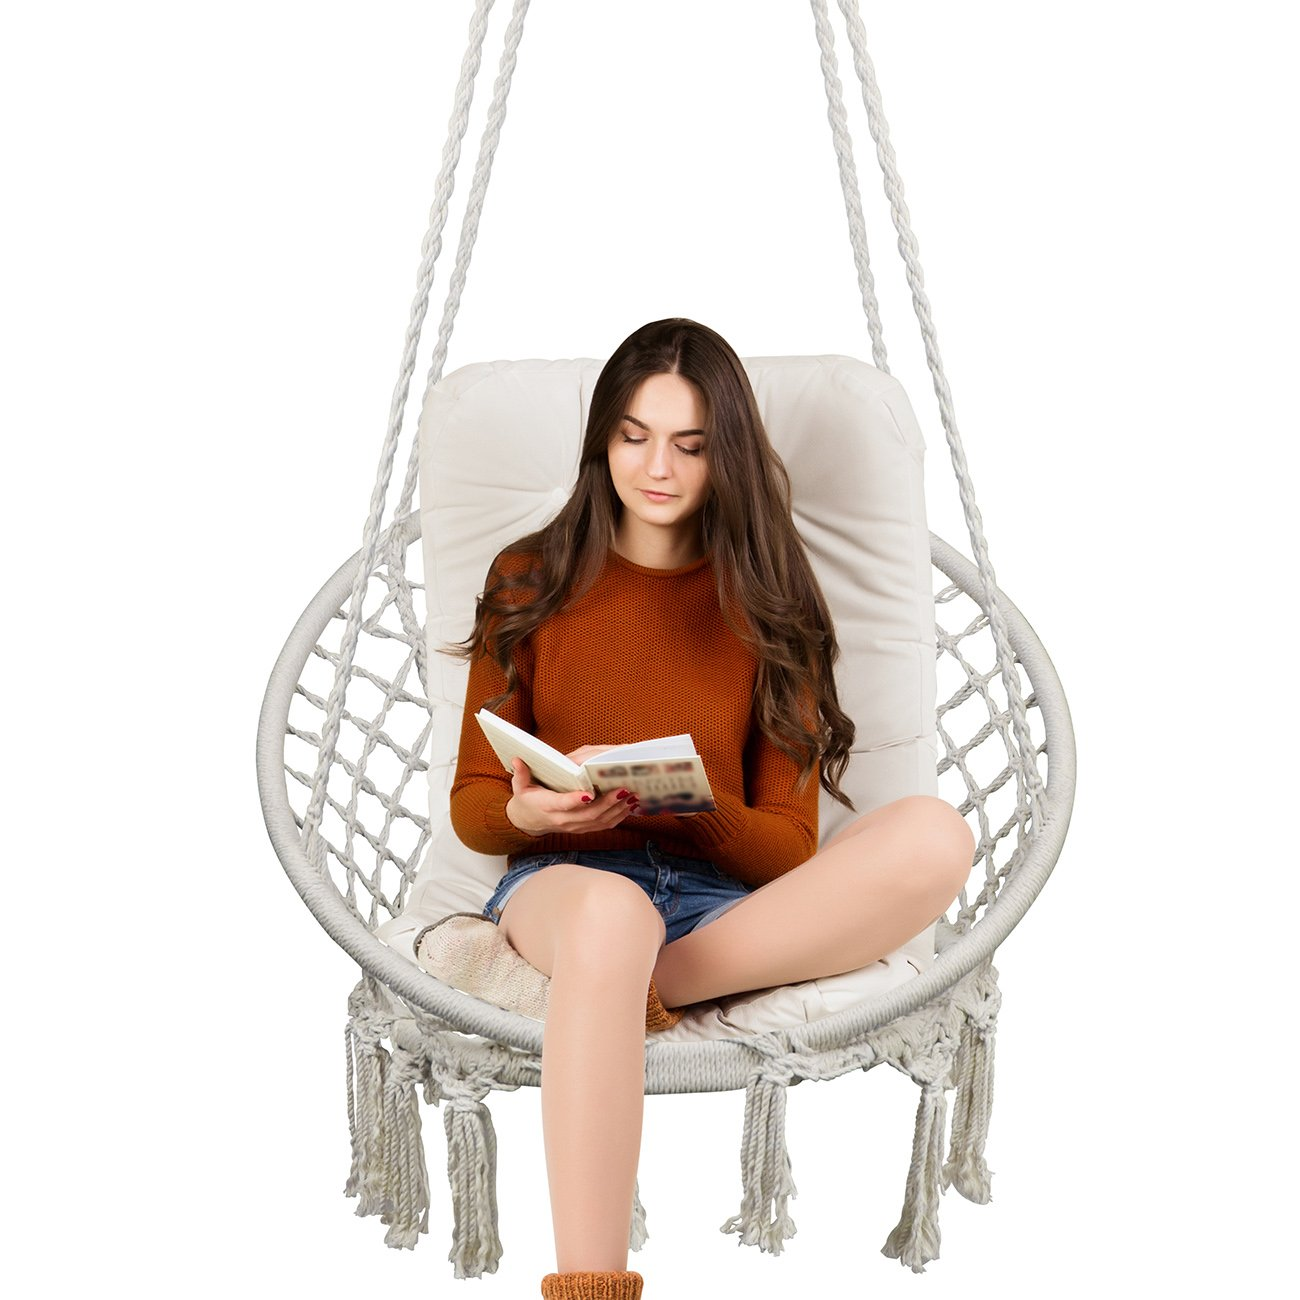 Fabulous Topway Hammock Chair Macrame Swing 330 Pound Capacity Pabps2019 Chair Design Images Pabps2019Com